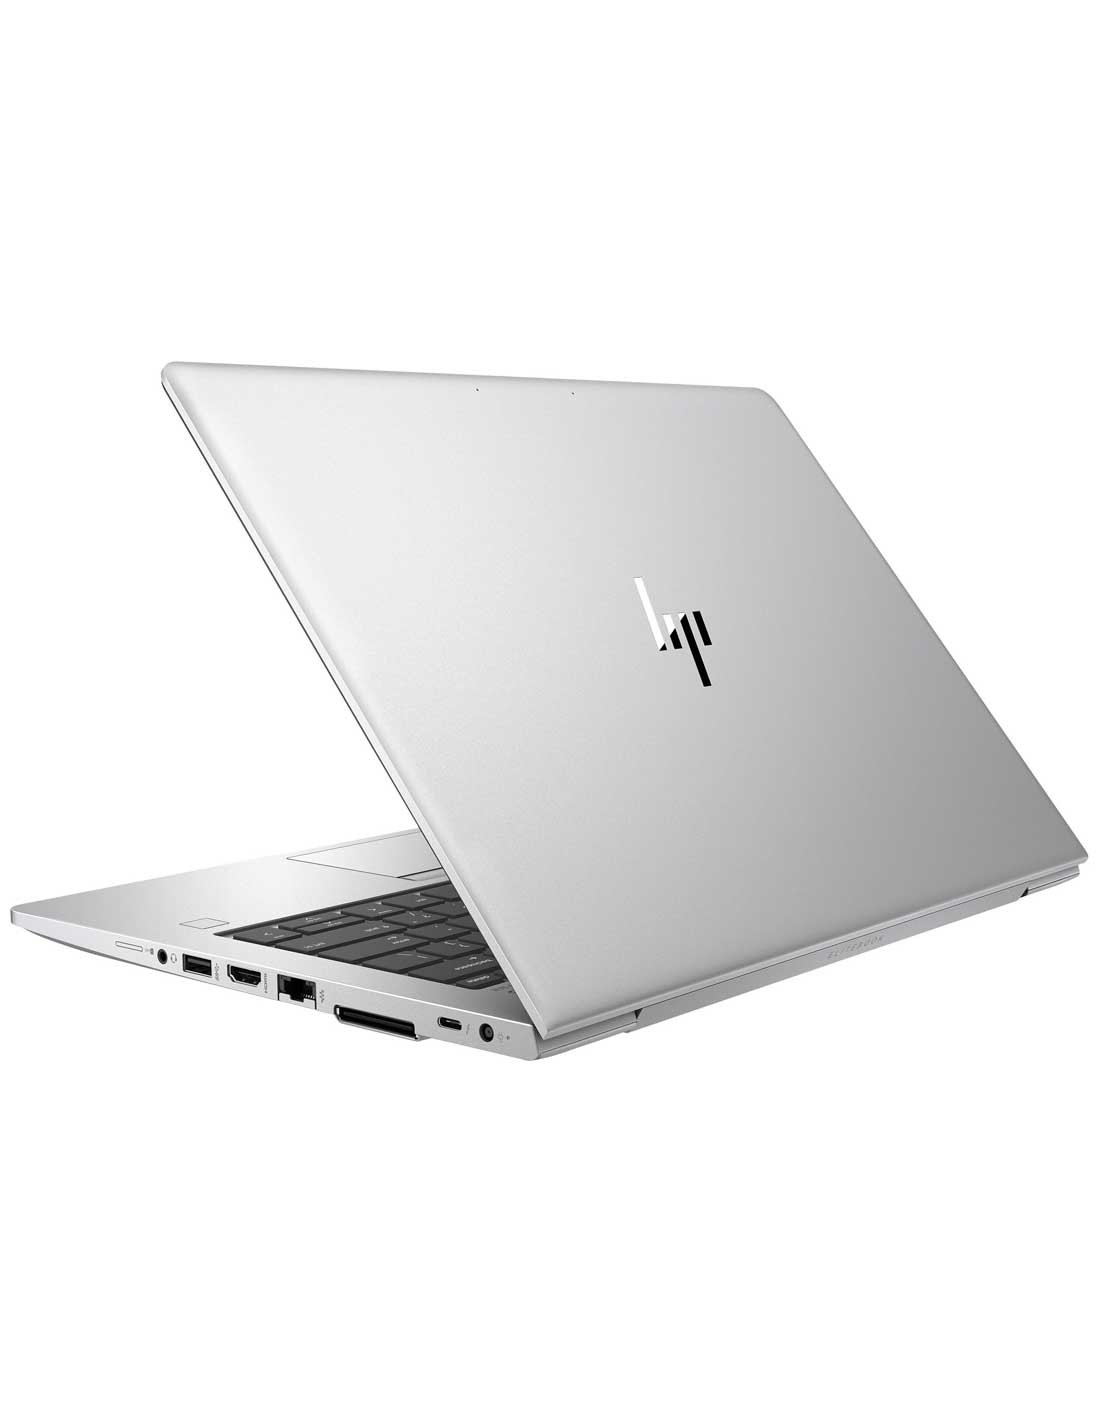 HP EliteBook 840 G5 Notebook images and photos